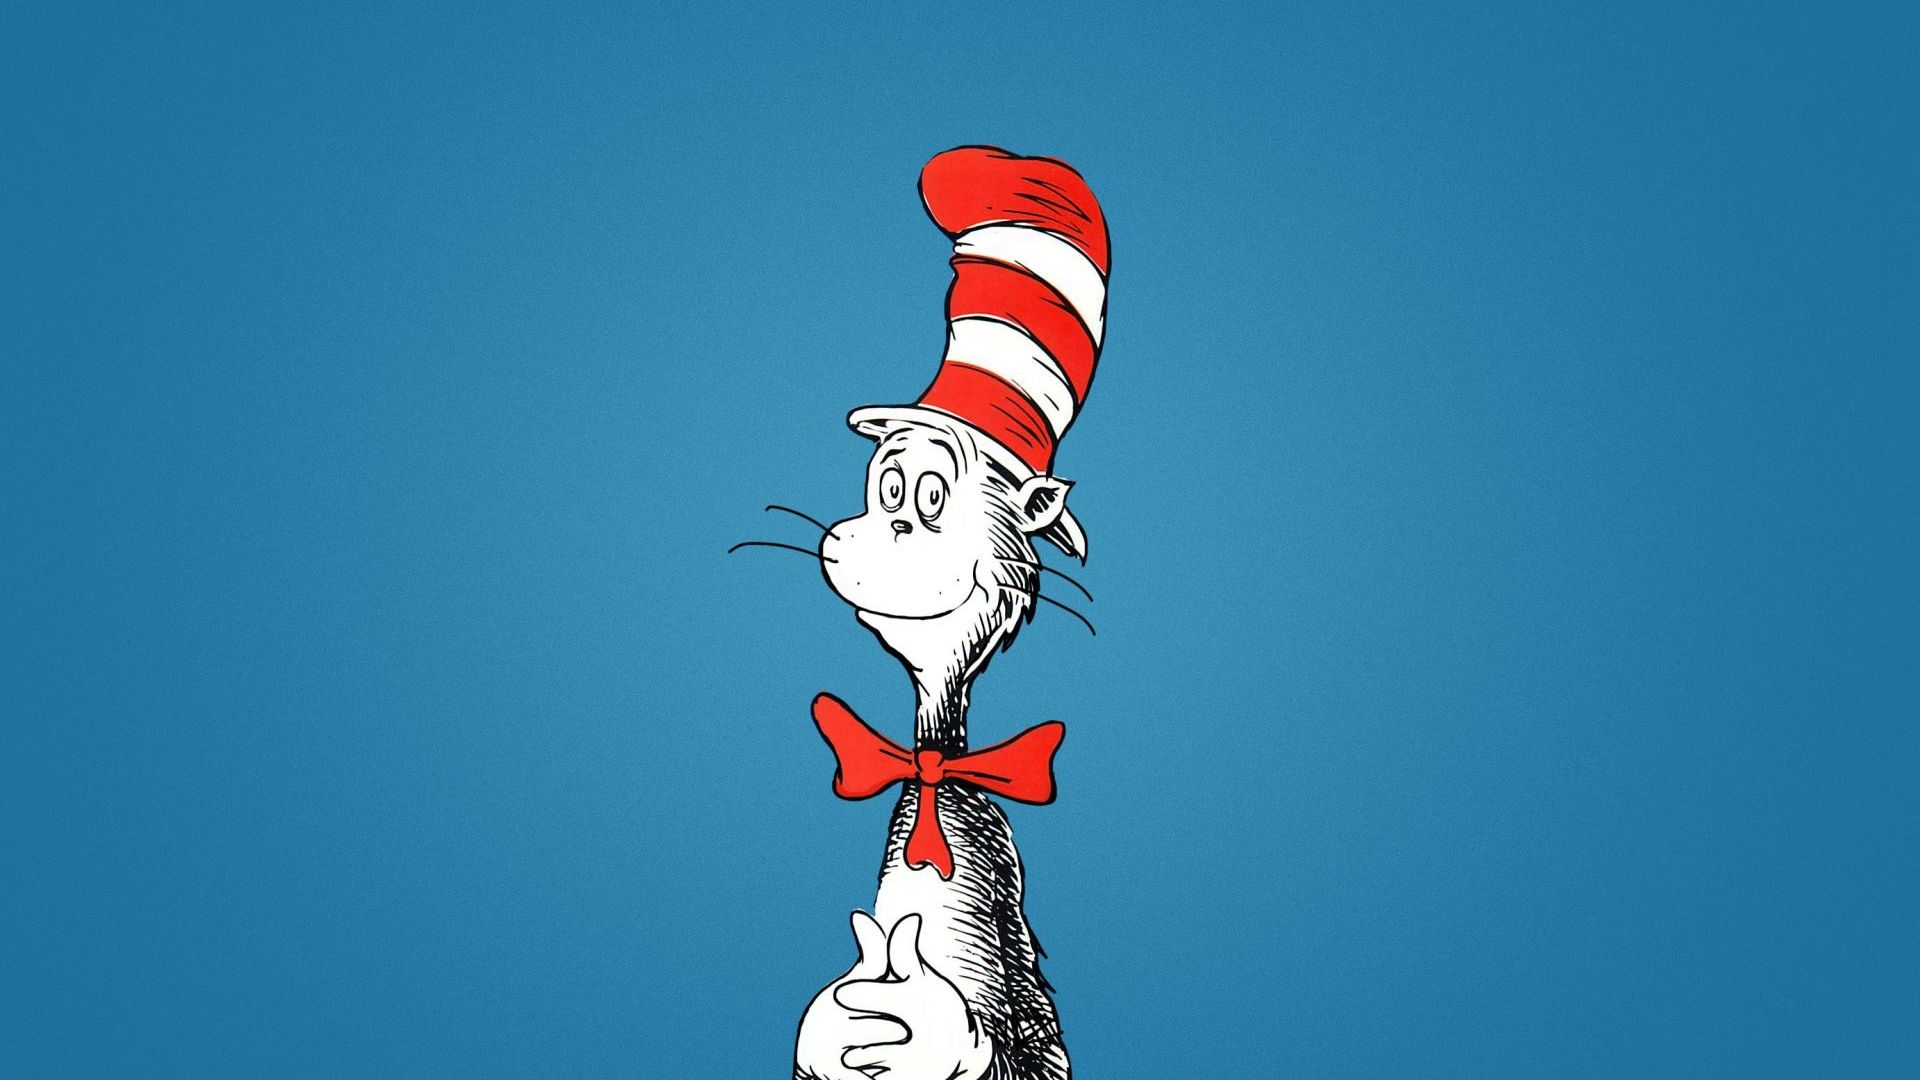 The Cat in the Hat Wallpaper 45133 1920x1080